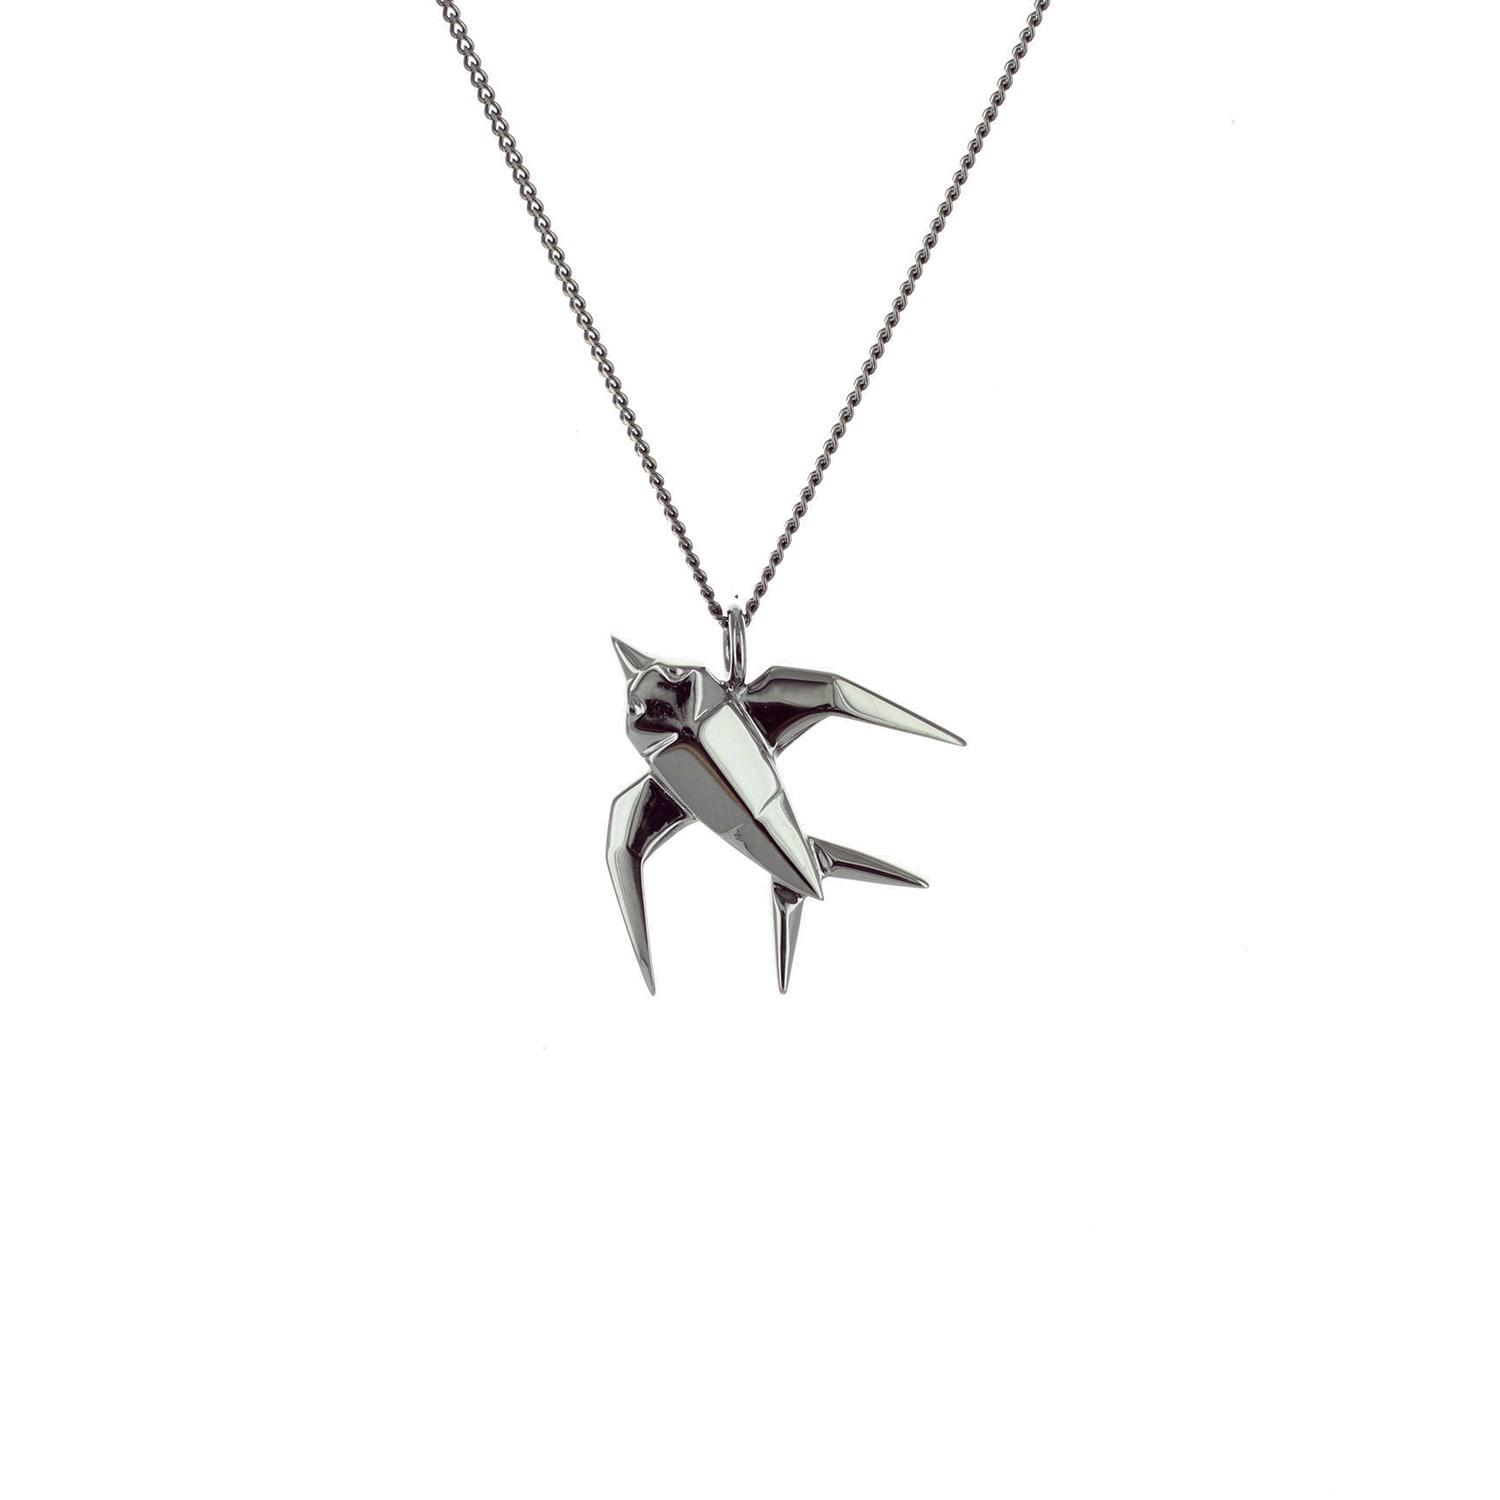 Origami Jewellery Black Silver Swallow Origami Necklace